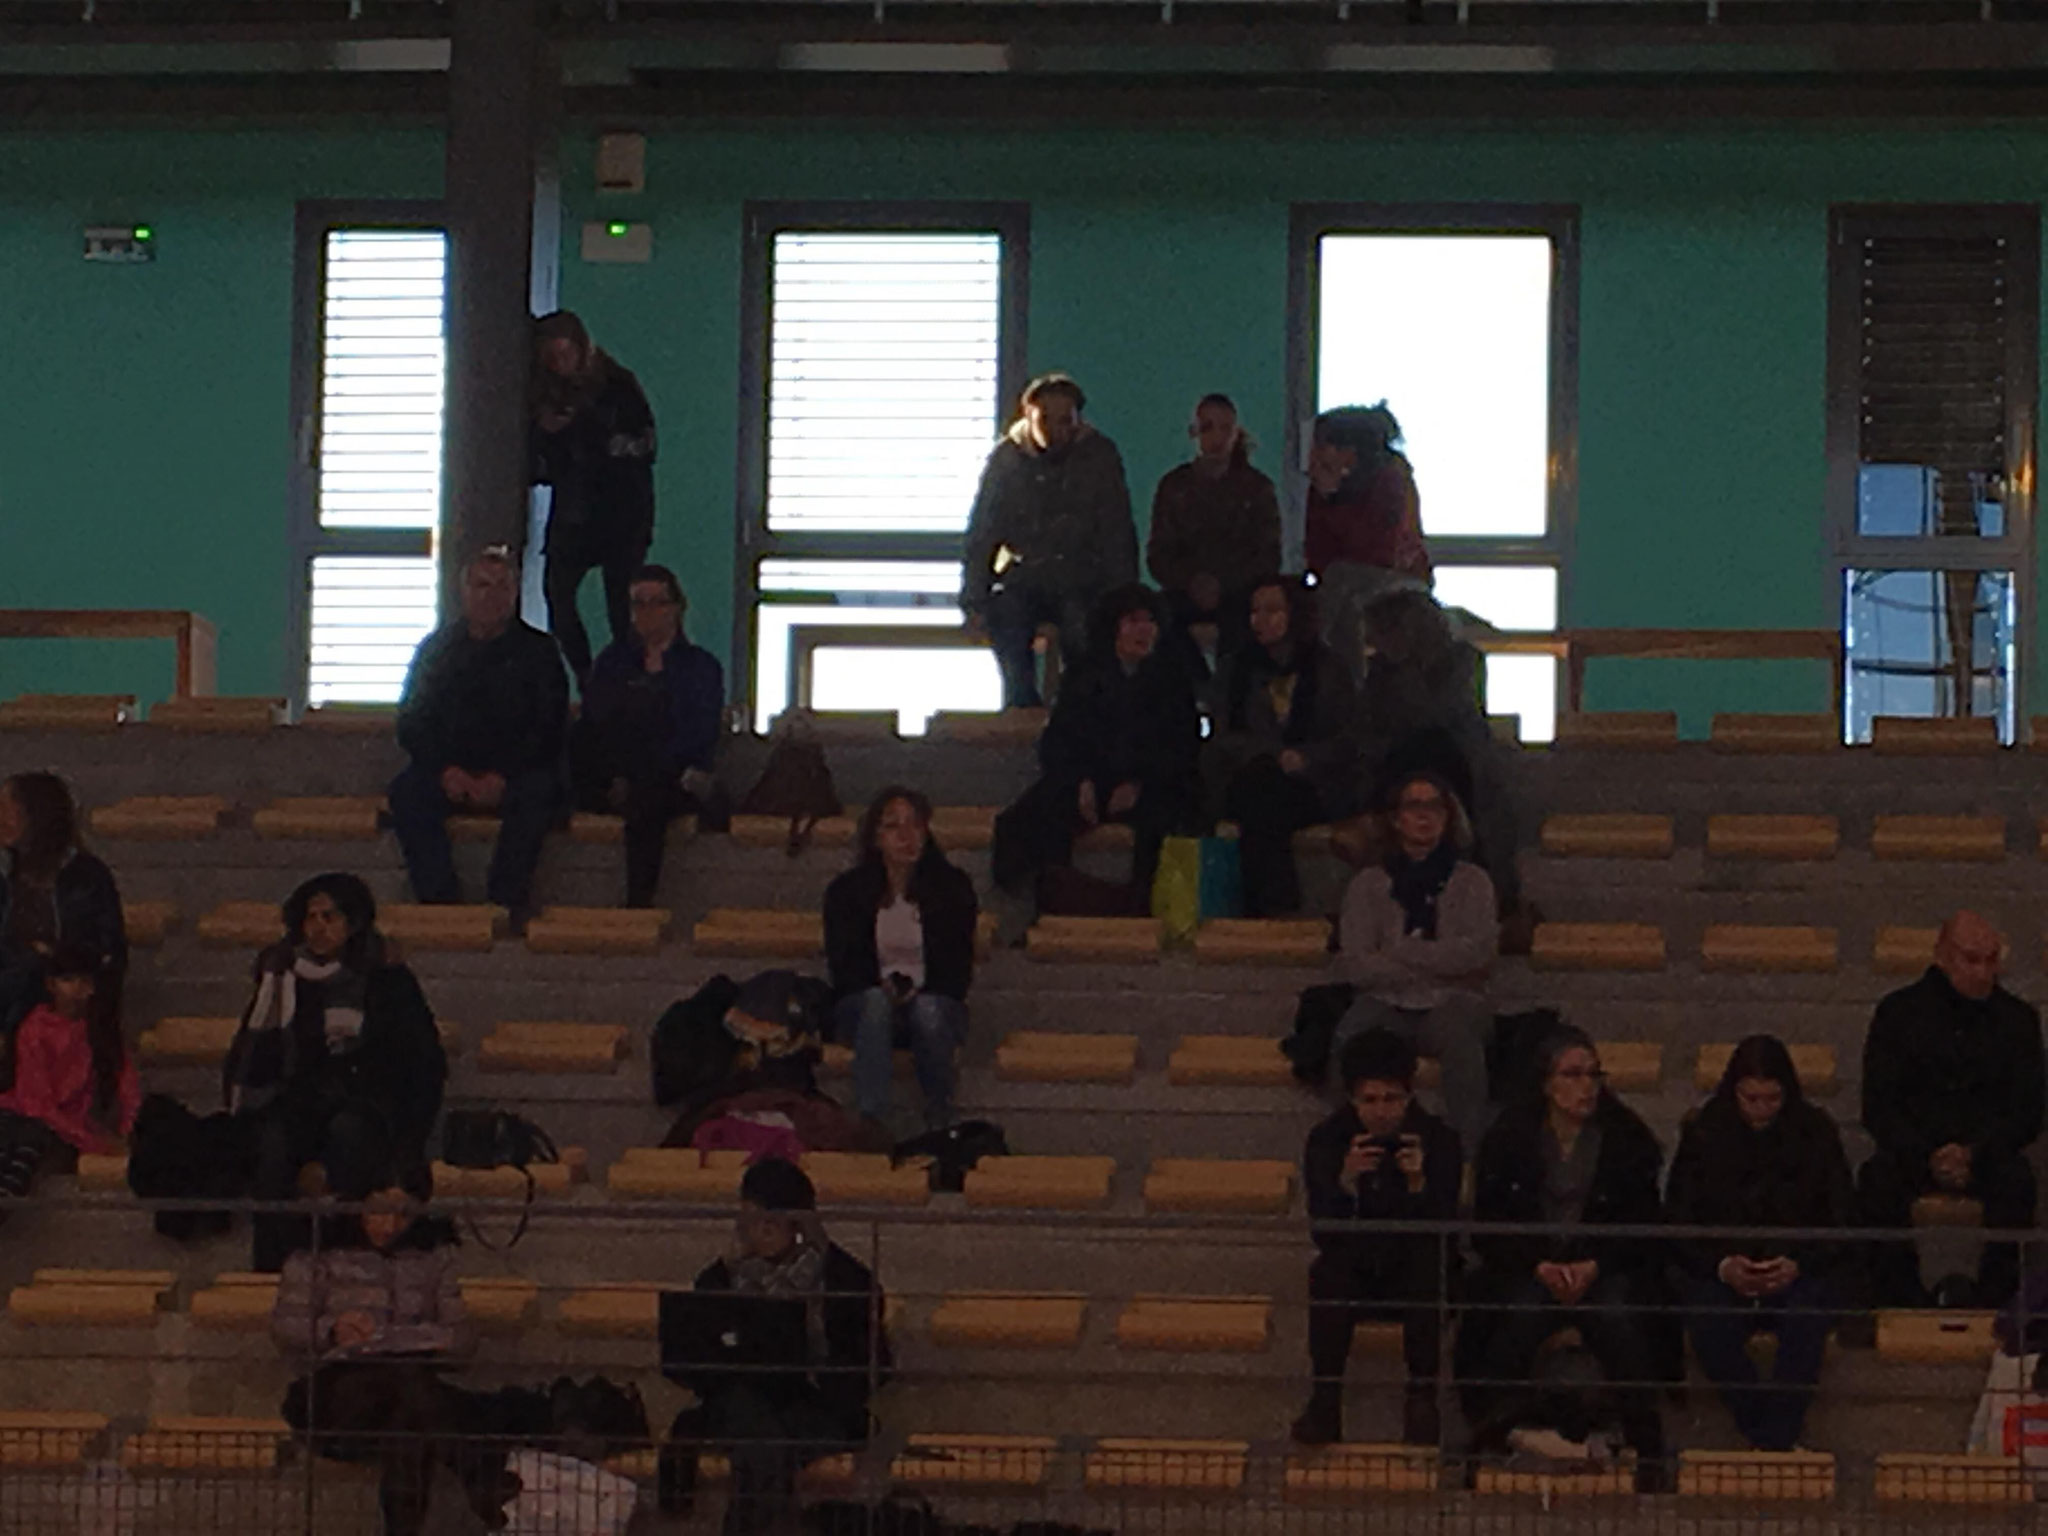 Des supporters courageux